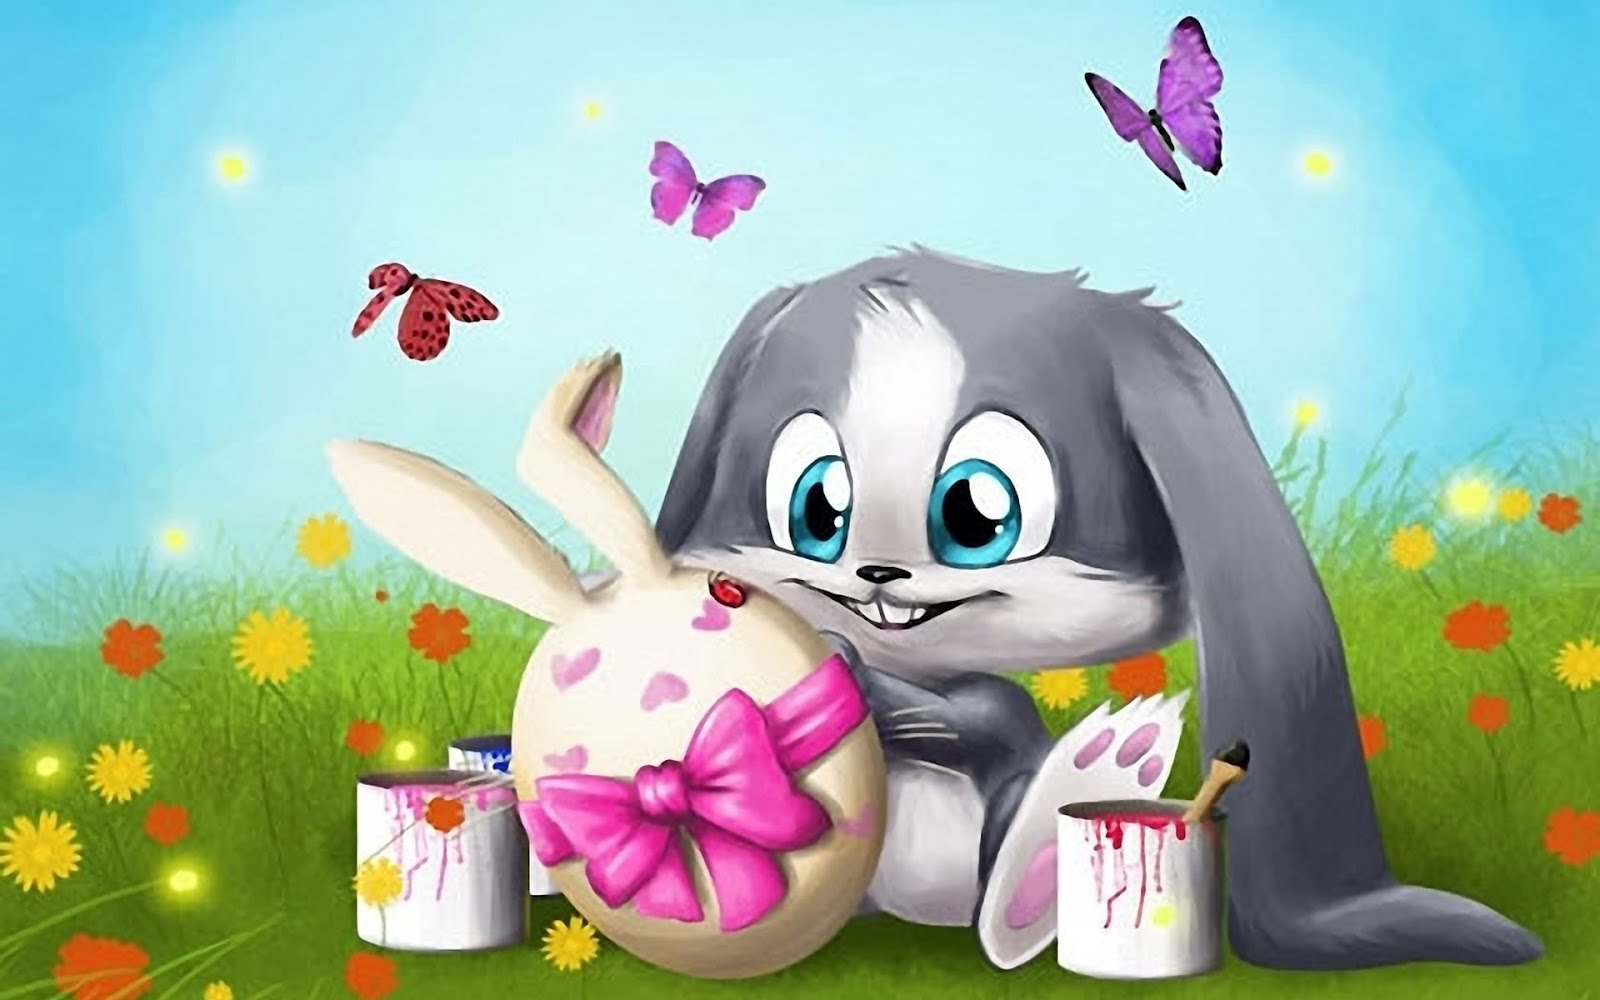 http://1.bp.blogspot.com/-F9mBB4gAOJw/UUl5UnYnEeI/AAAAAAAABXI/91RNxVAc0so/s1600/easter-cartoon-wallpaper-4.jpg